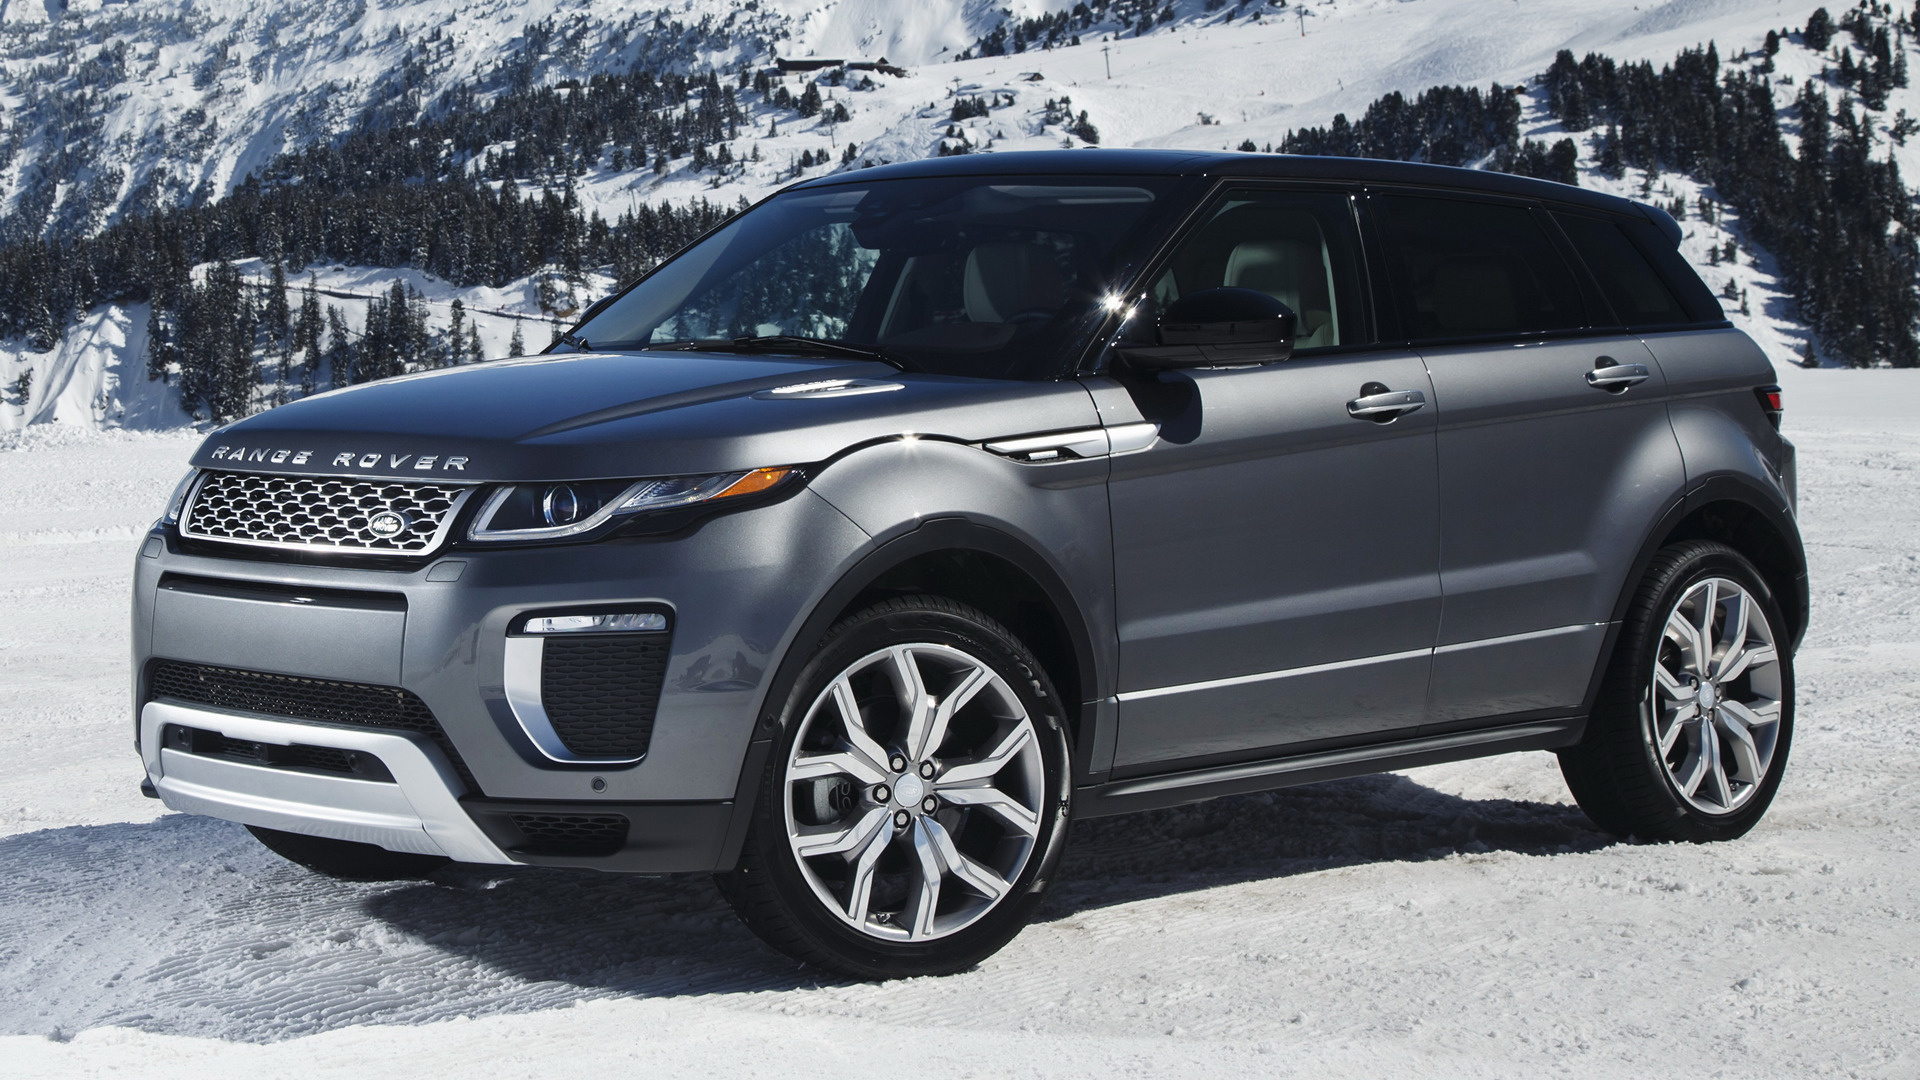 Range Rover Evoque >> 2016 Range Rover Evoque Autobiography (US) - Wallpapers ...